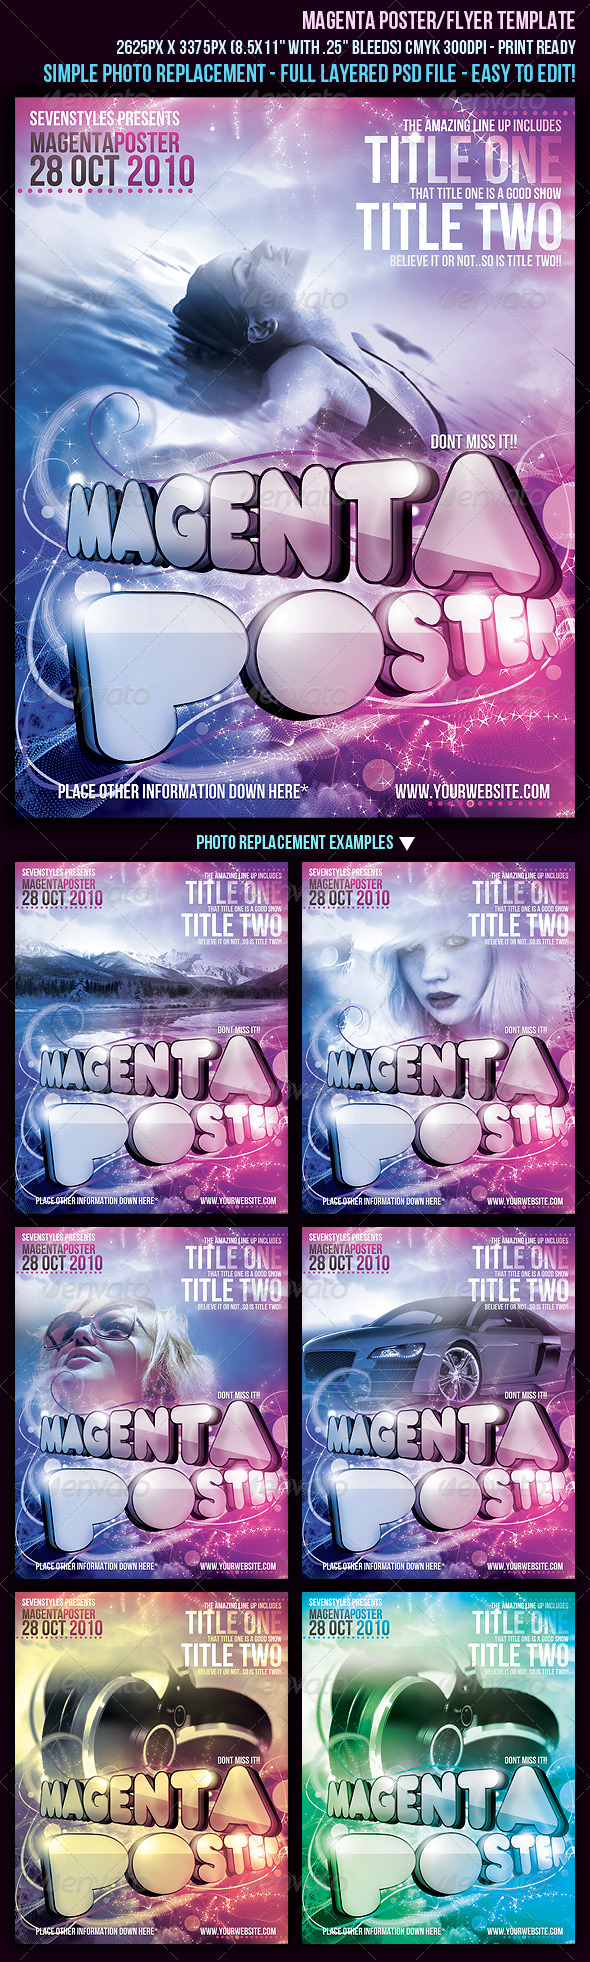 Magenta Poster/Flyer Template - Clubs & Parties Events